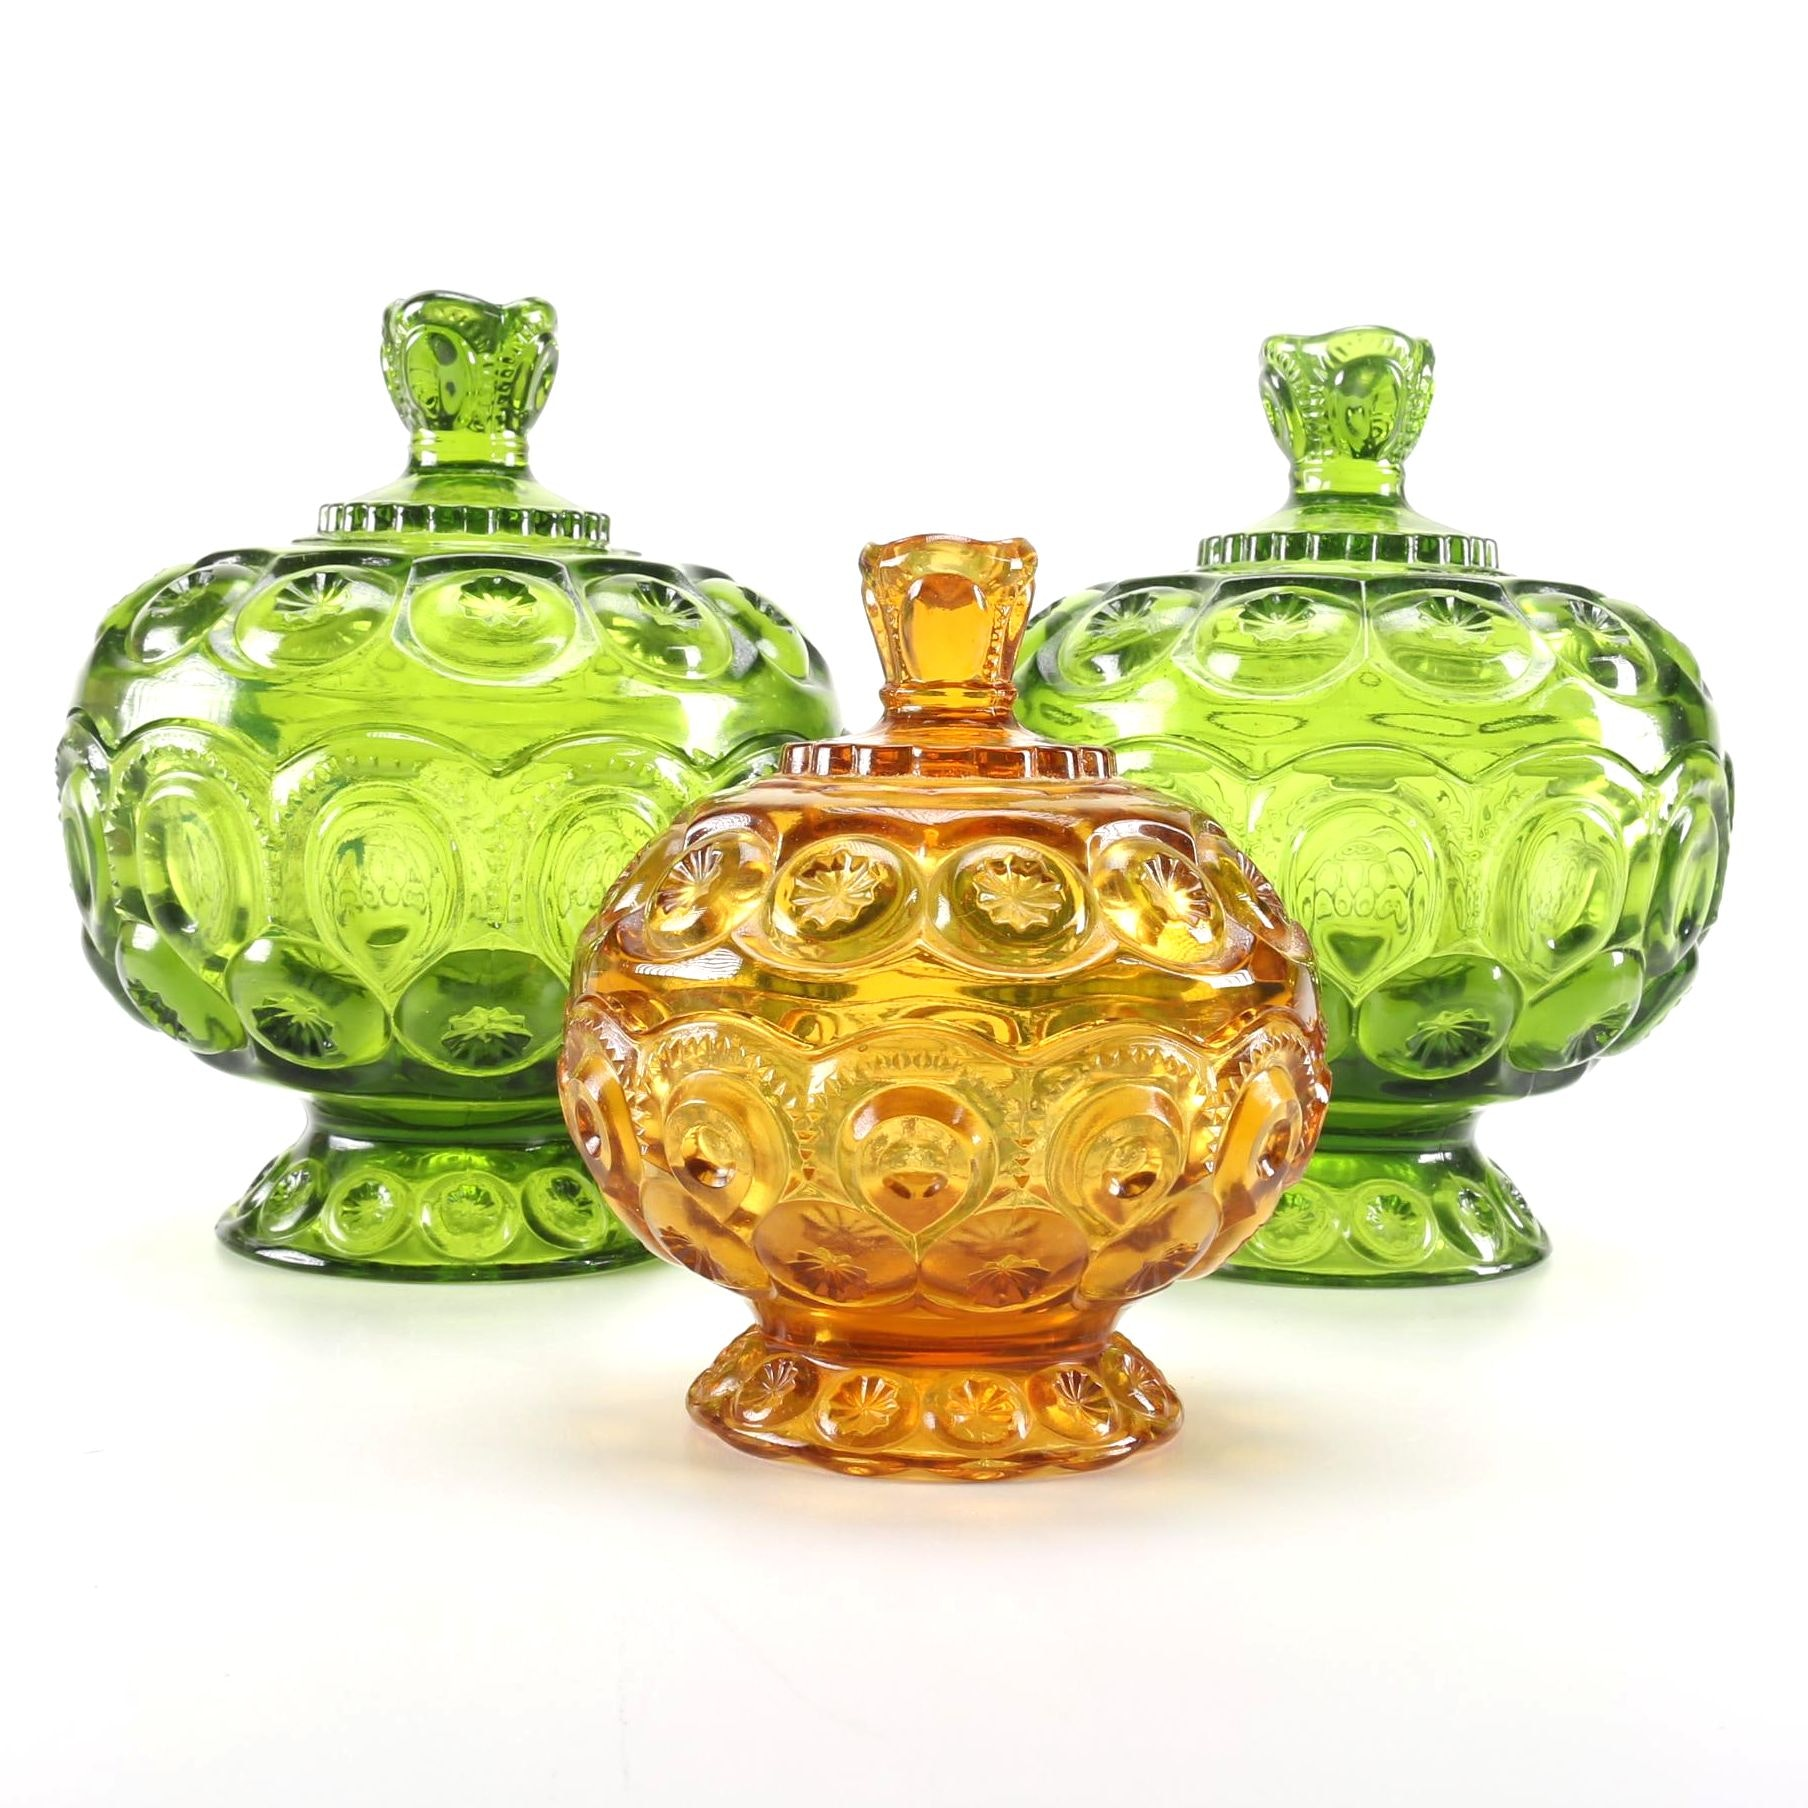 Set of Colored Glass Lidded Dishes